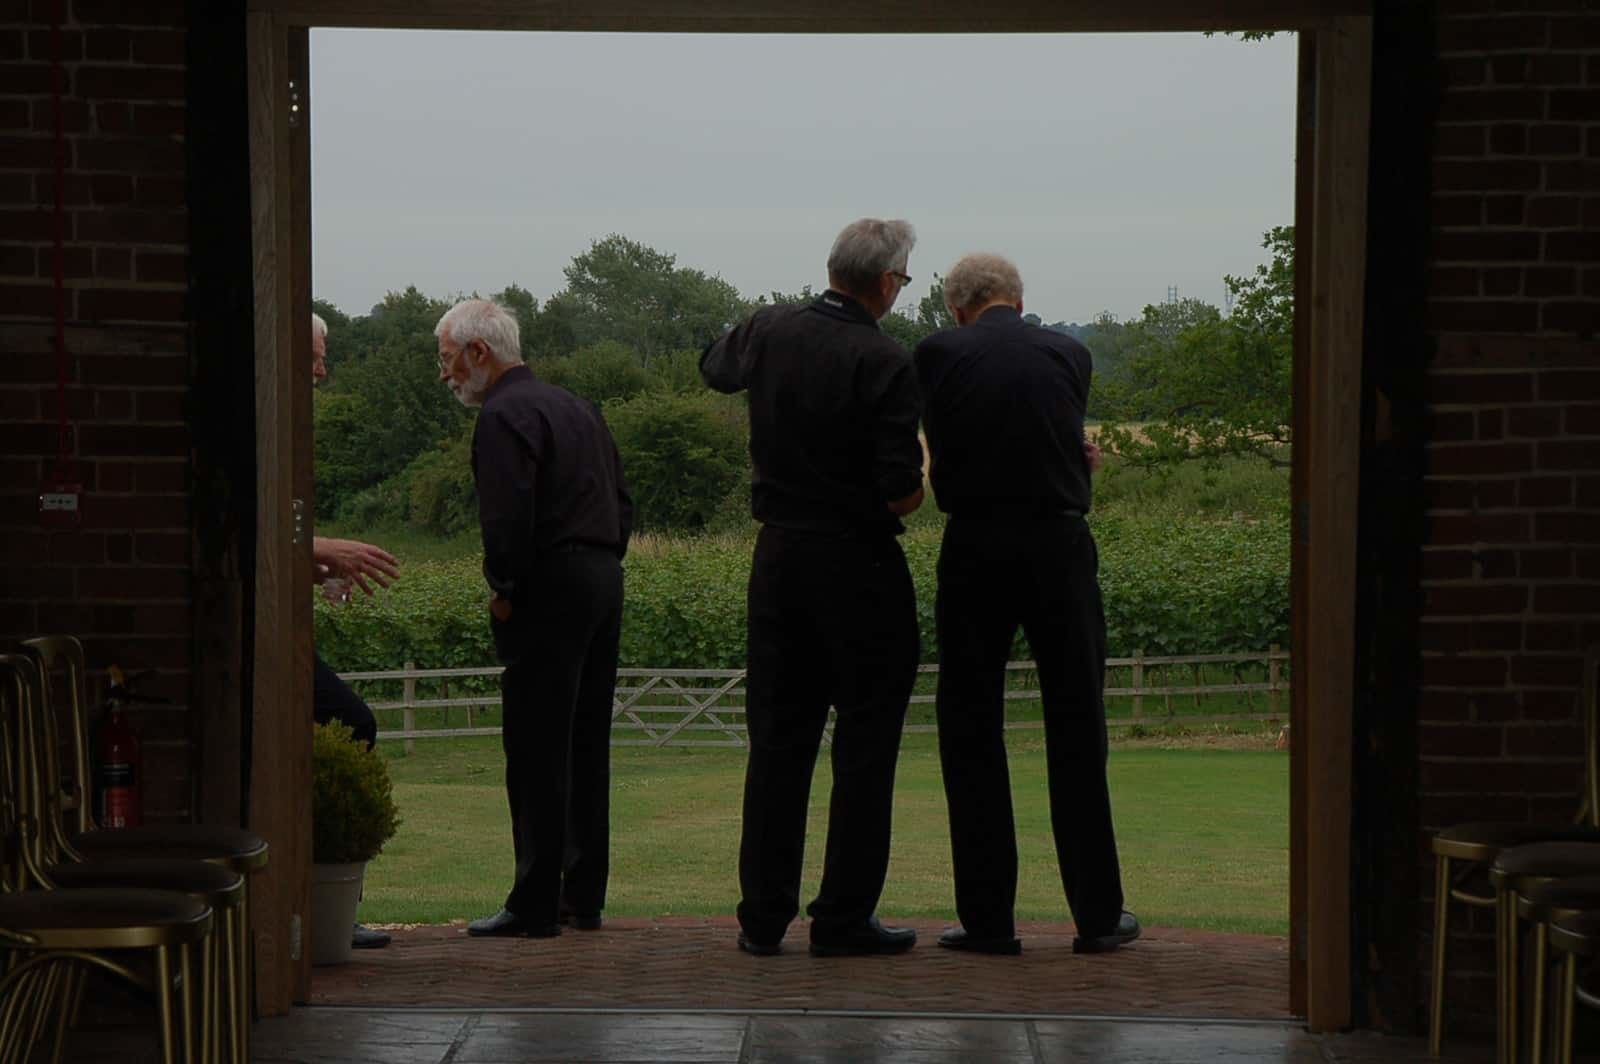 Admiring the view at corporate event